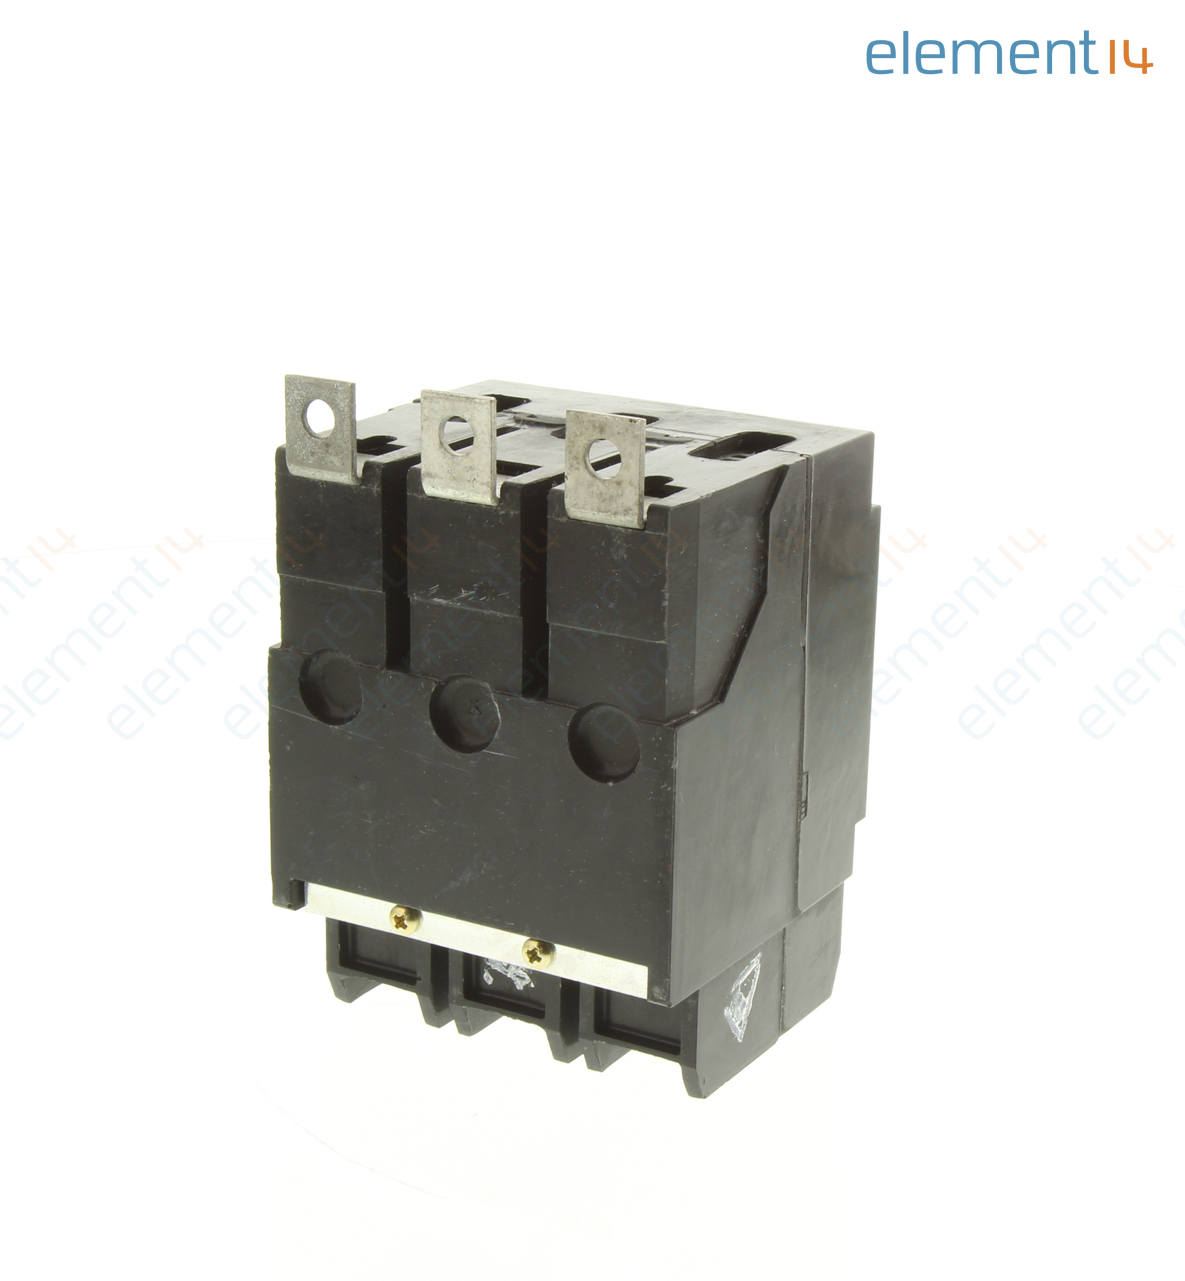 Ghb3100 Eaton Cutler Hammer Thermal Magnetic Circuit Breaker Project Malaysia Ultra Fast Acting Electronic Add To Compare